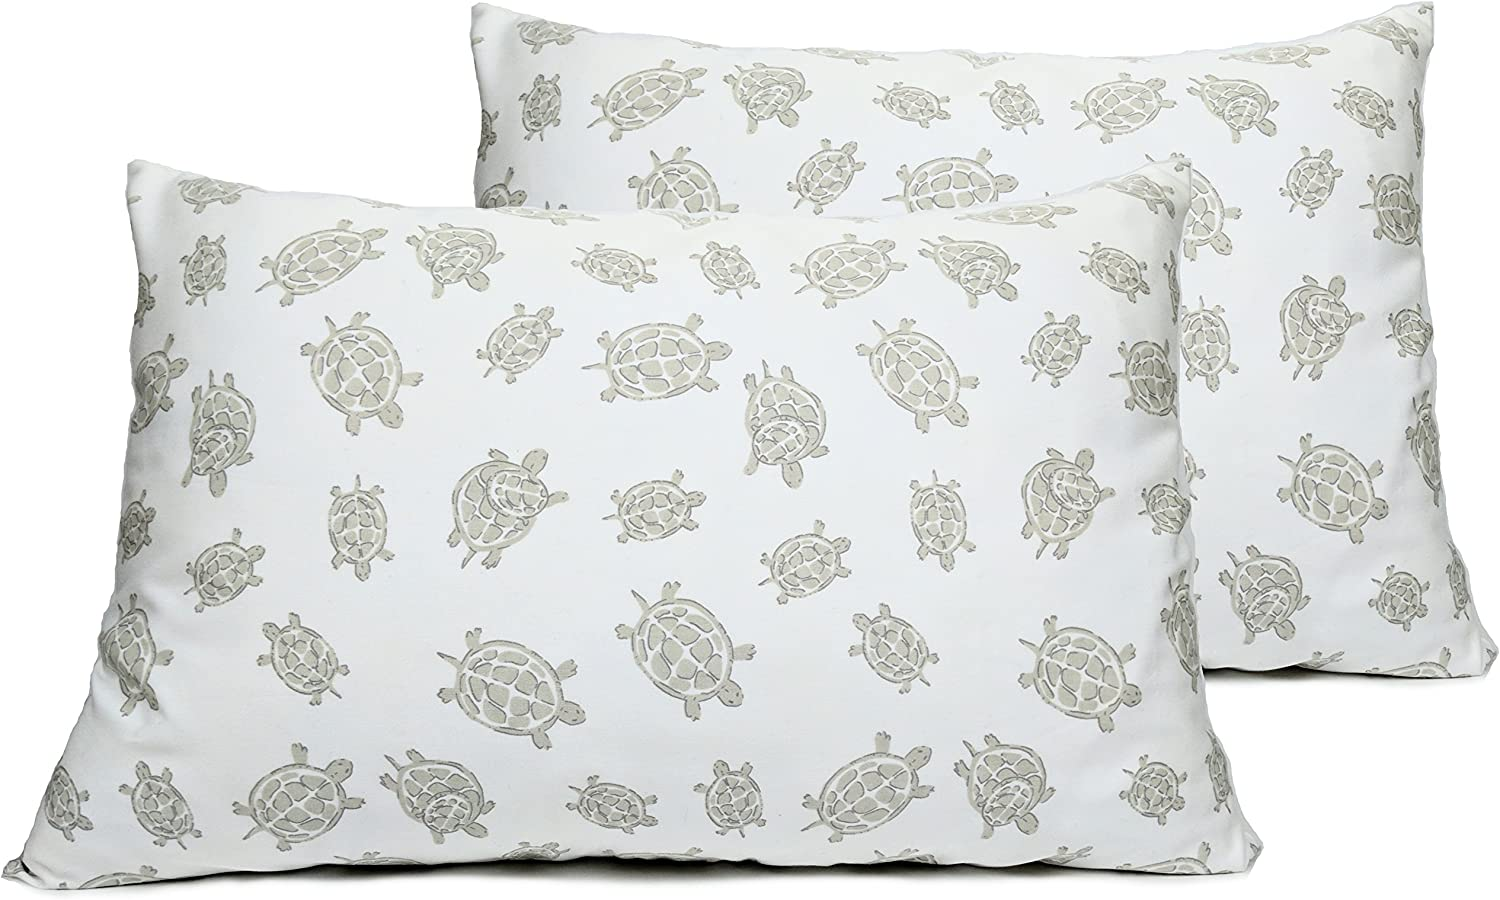 2 Toddler or Travel Pillowcases in Organic Cotton to Fit 13 x 18 and 14 x 19 Pillow, Turtle Print (Grey)